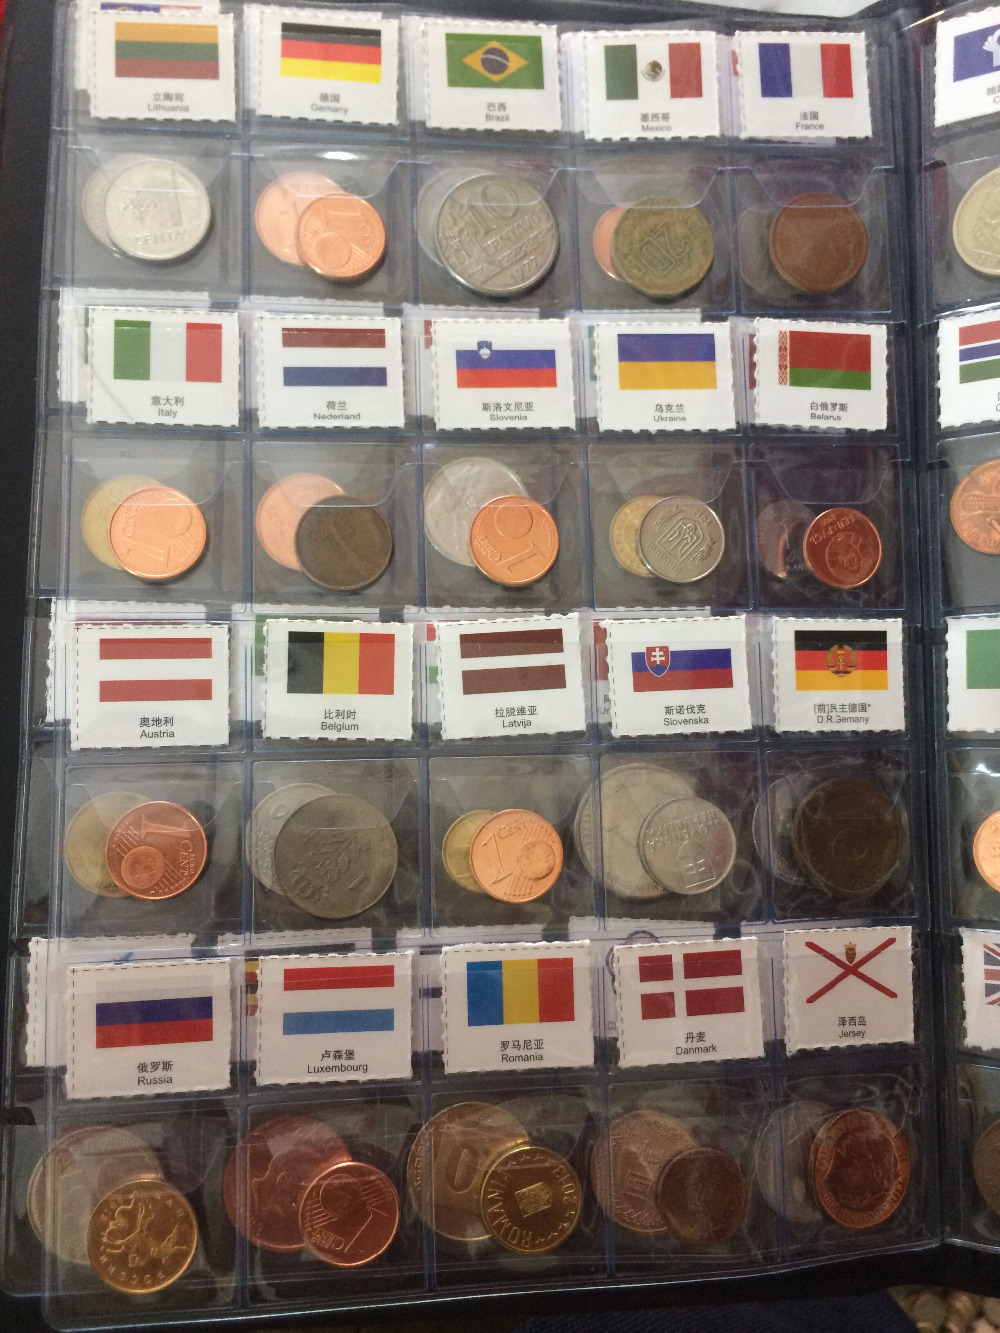 TNUKK  collection COINS of various values in 60 countries,silver coins coin book metal handicraft home decoration.